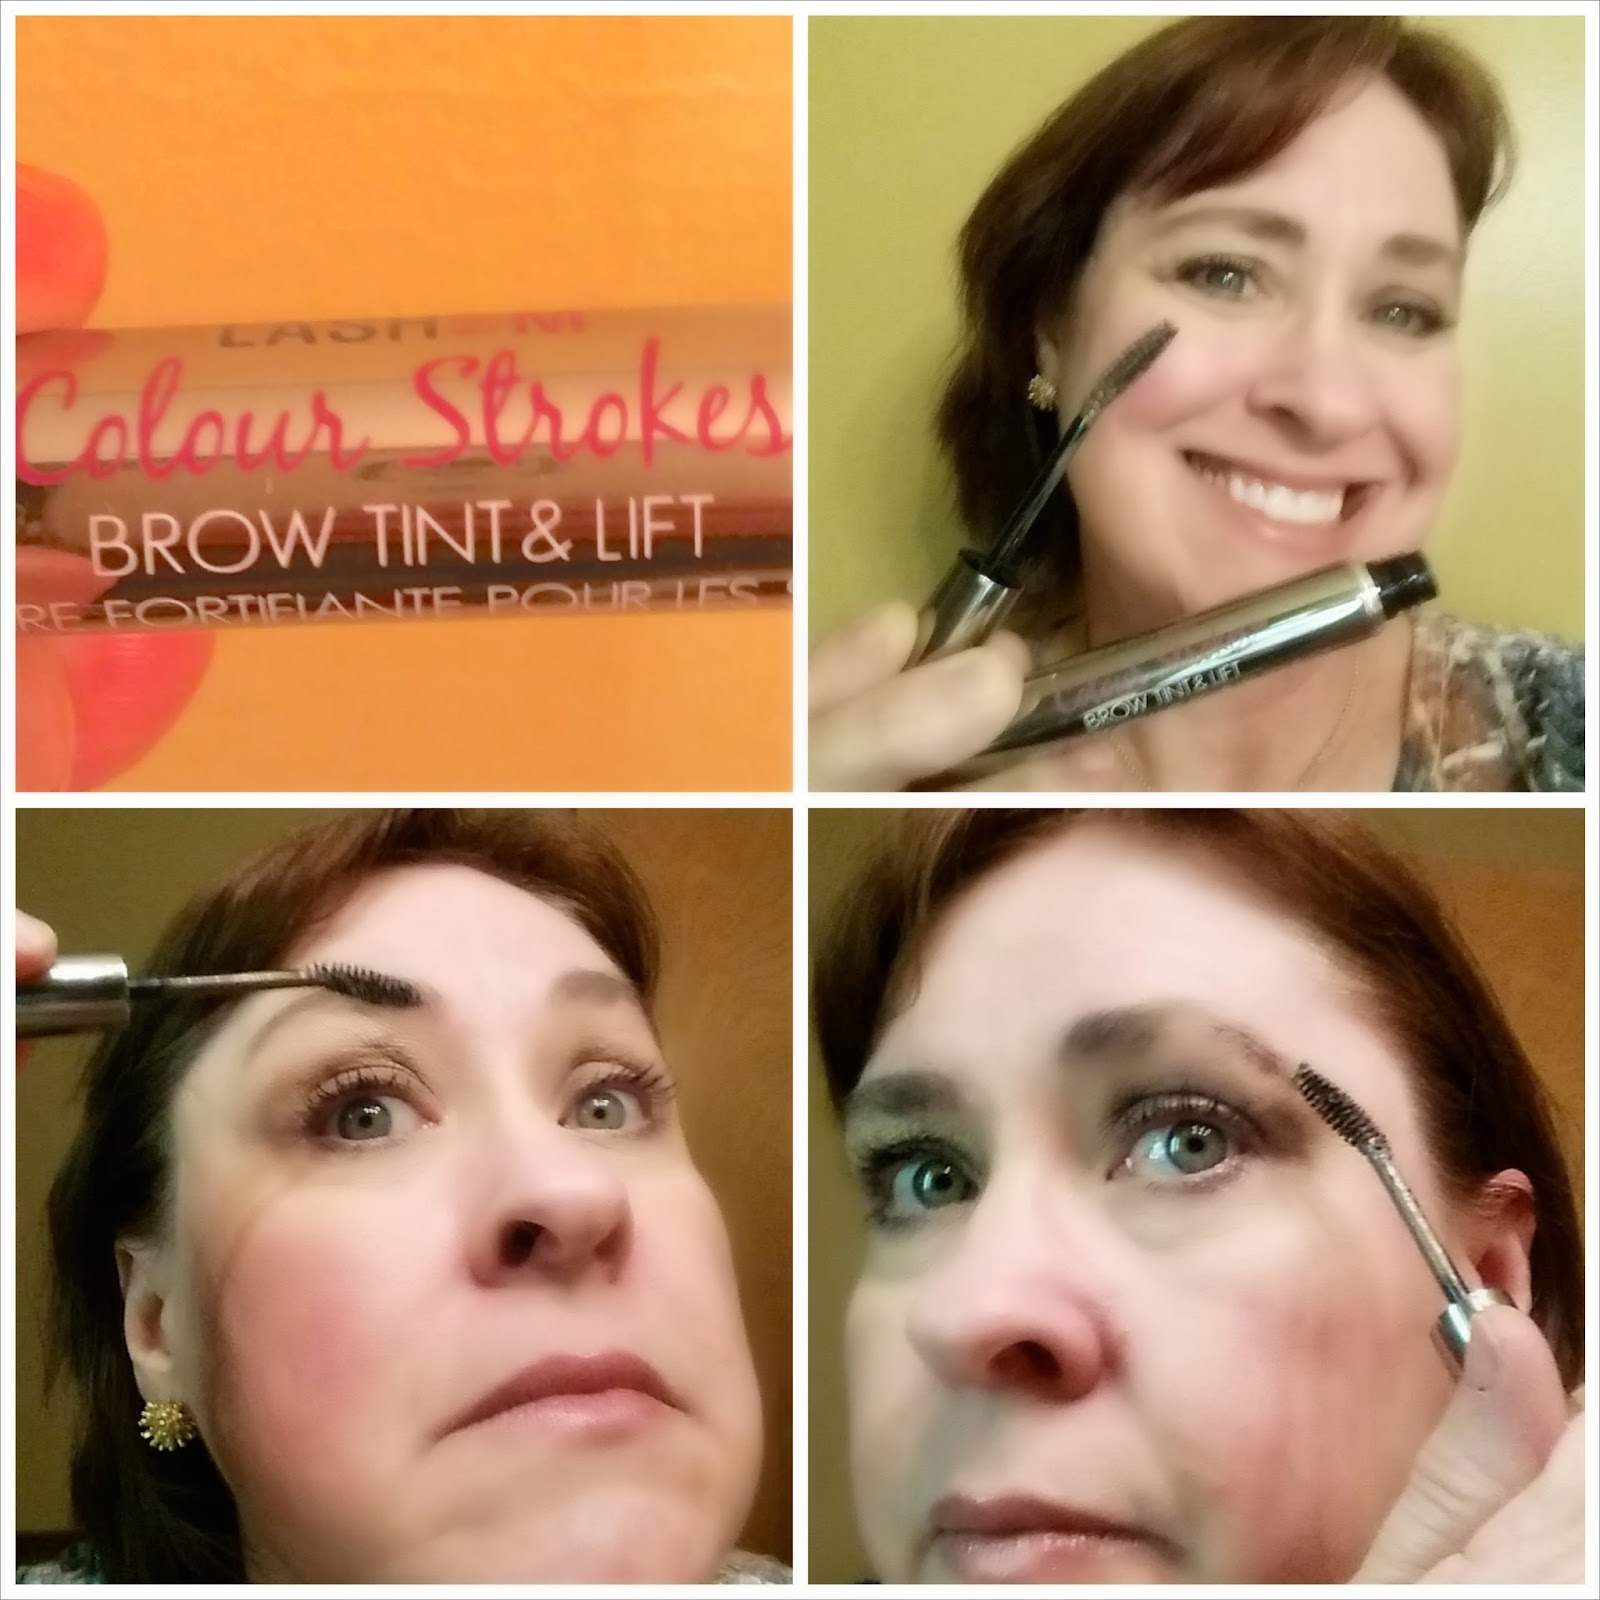 LASHEM Color Strokes Brow Tint Review and Coupon at Fashion Beyond Forty